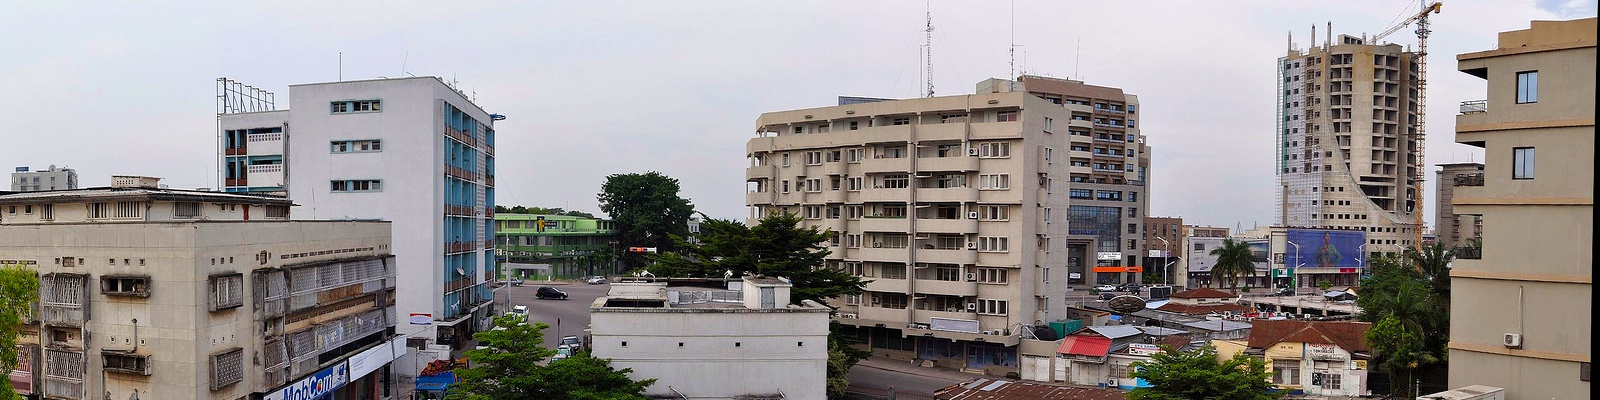 A panoramic view of Kinshasa city streets and buildings.